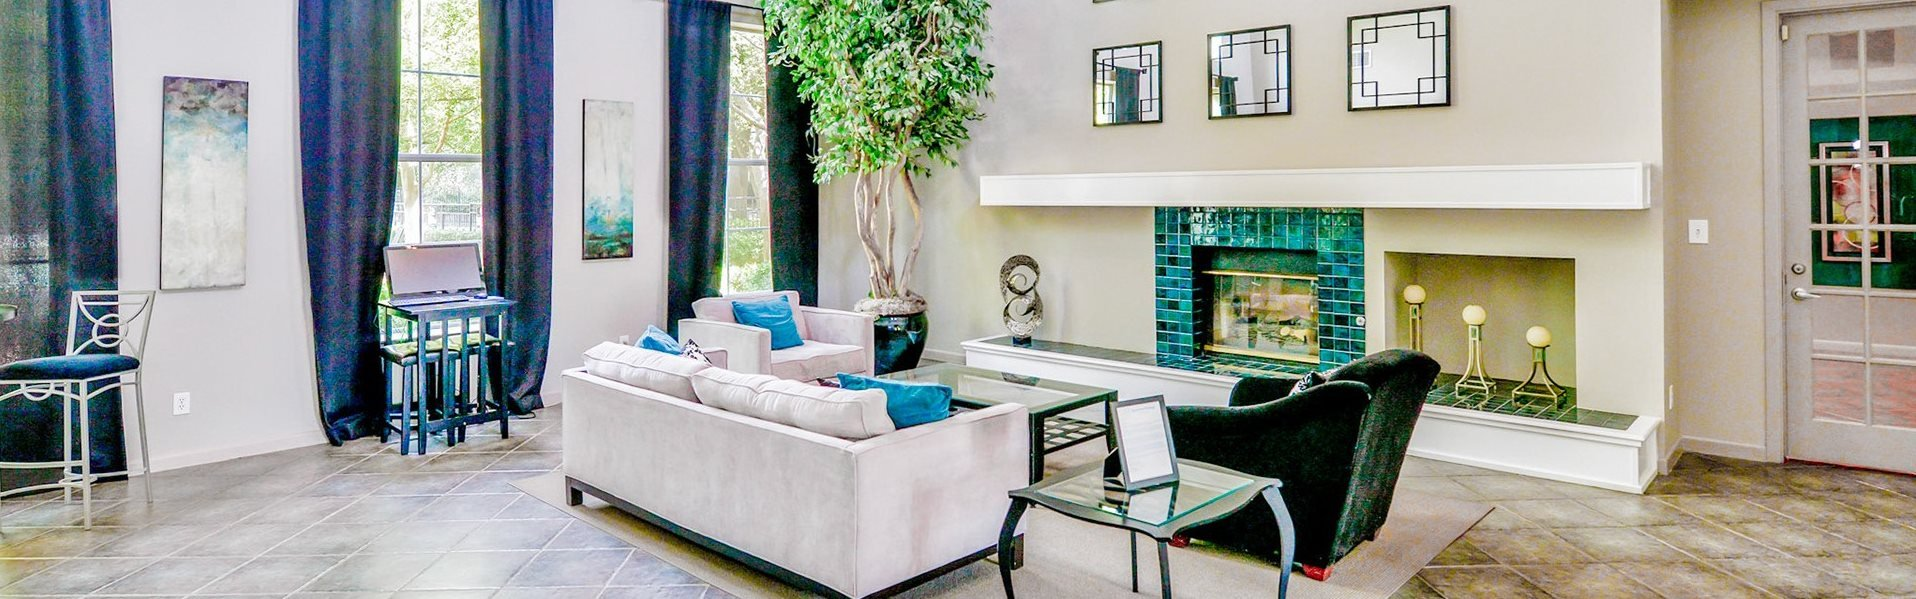 Greyson's Gate Apartments in North Dallas, TX offers 1,2 & 3 bedroom apartment homes.